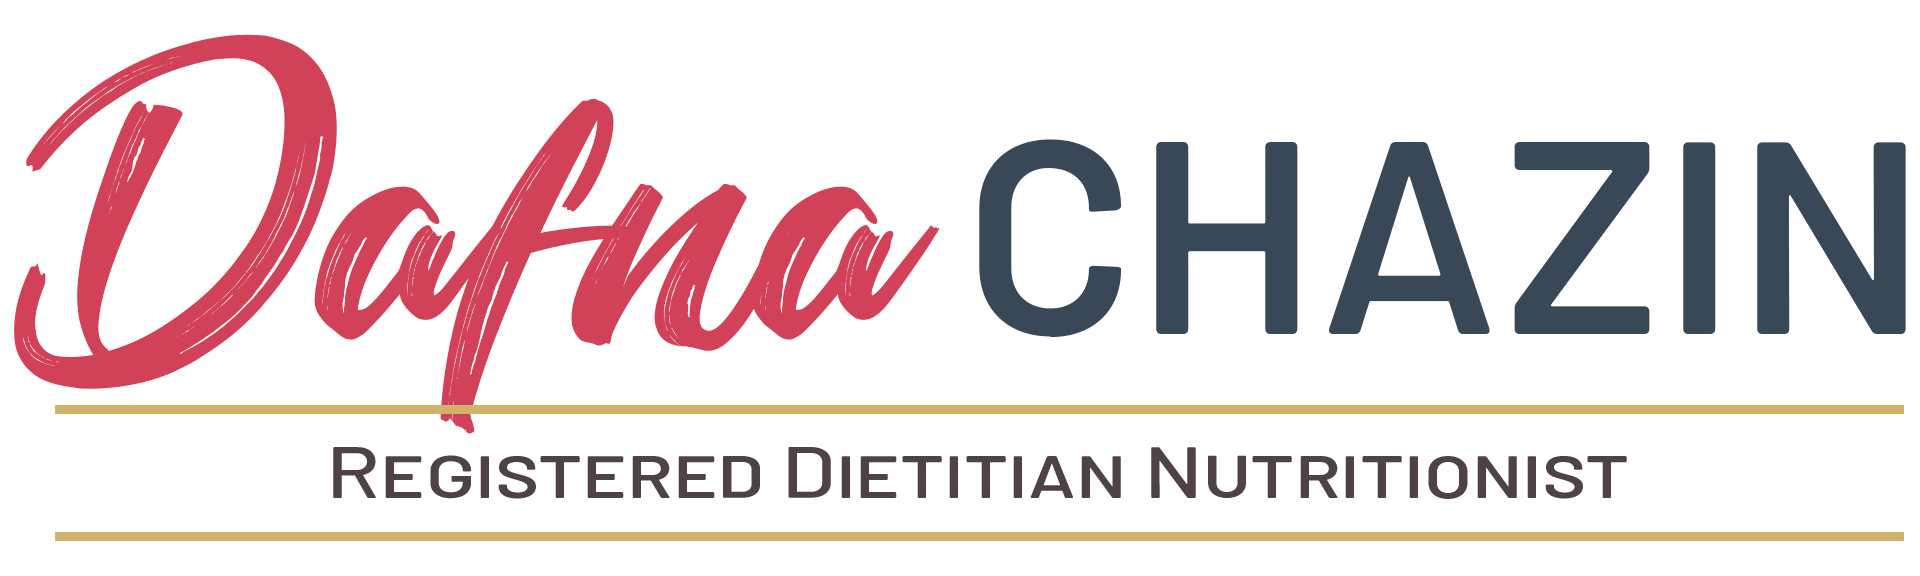 Dafna Chazin RD Registered Dietitian Nutritionist